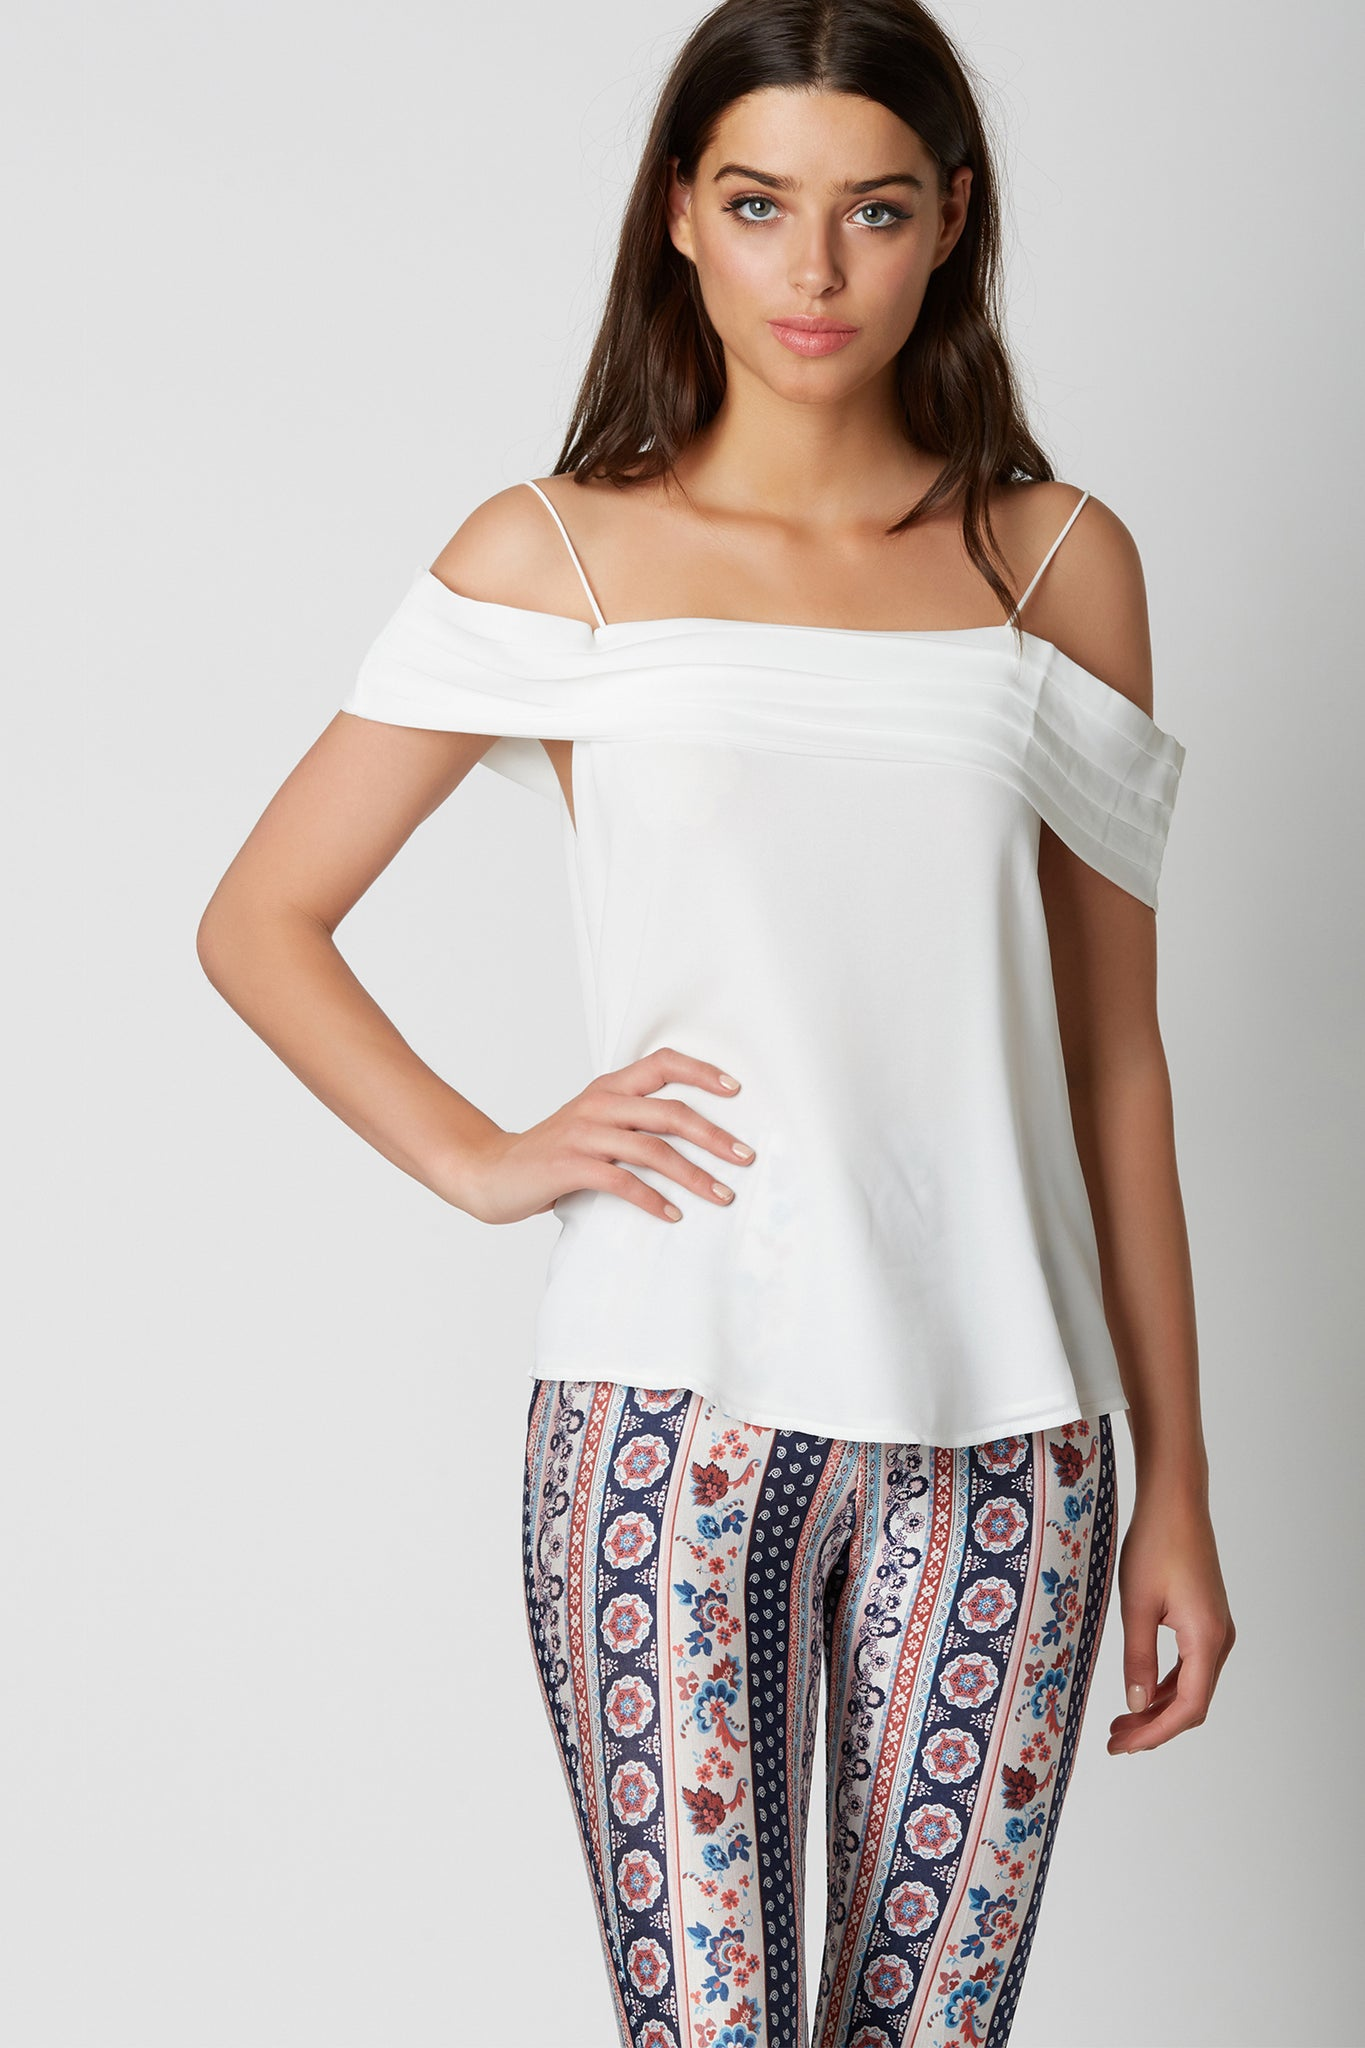 Chic cold shoulder chiffon top with pleated design at top with straight neckline. Fully lined with relaxed fit.